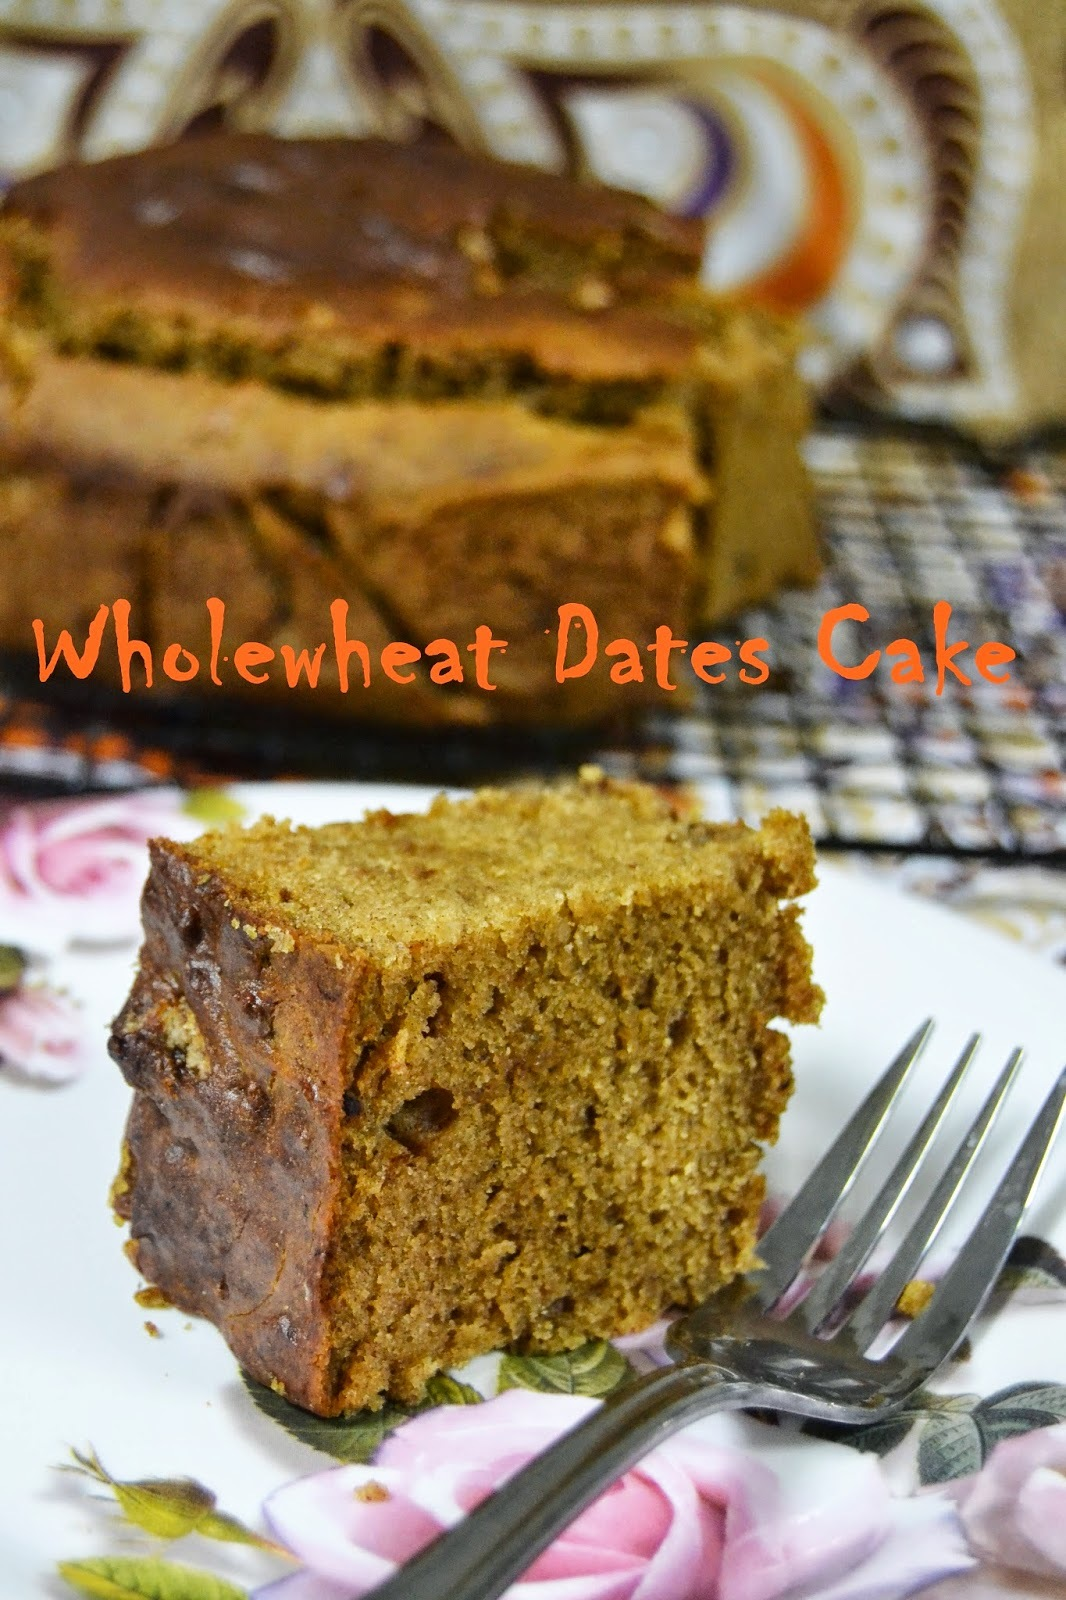 Wholewheat Dates Cake